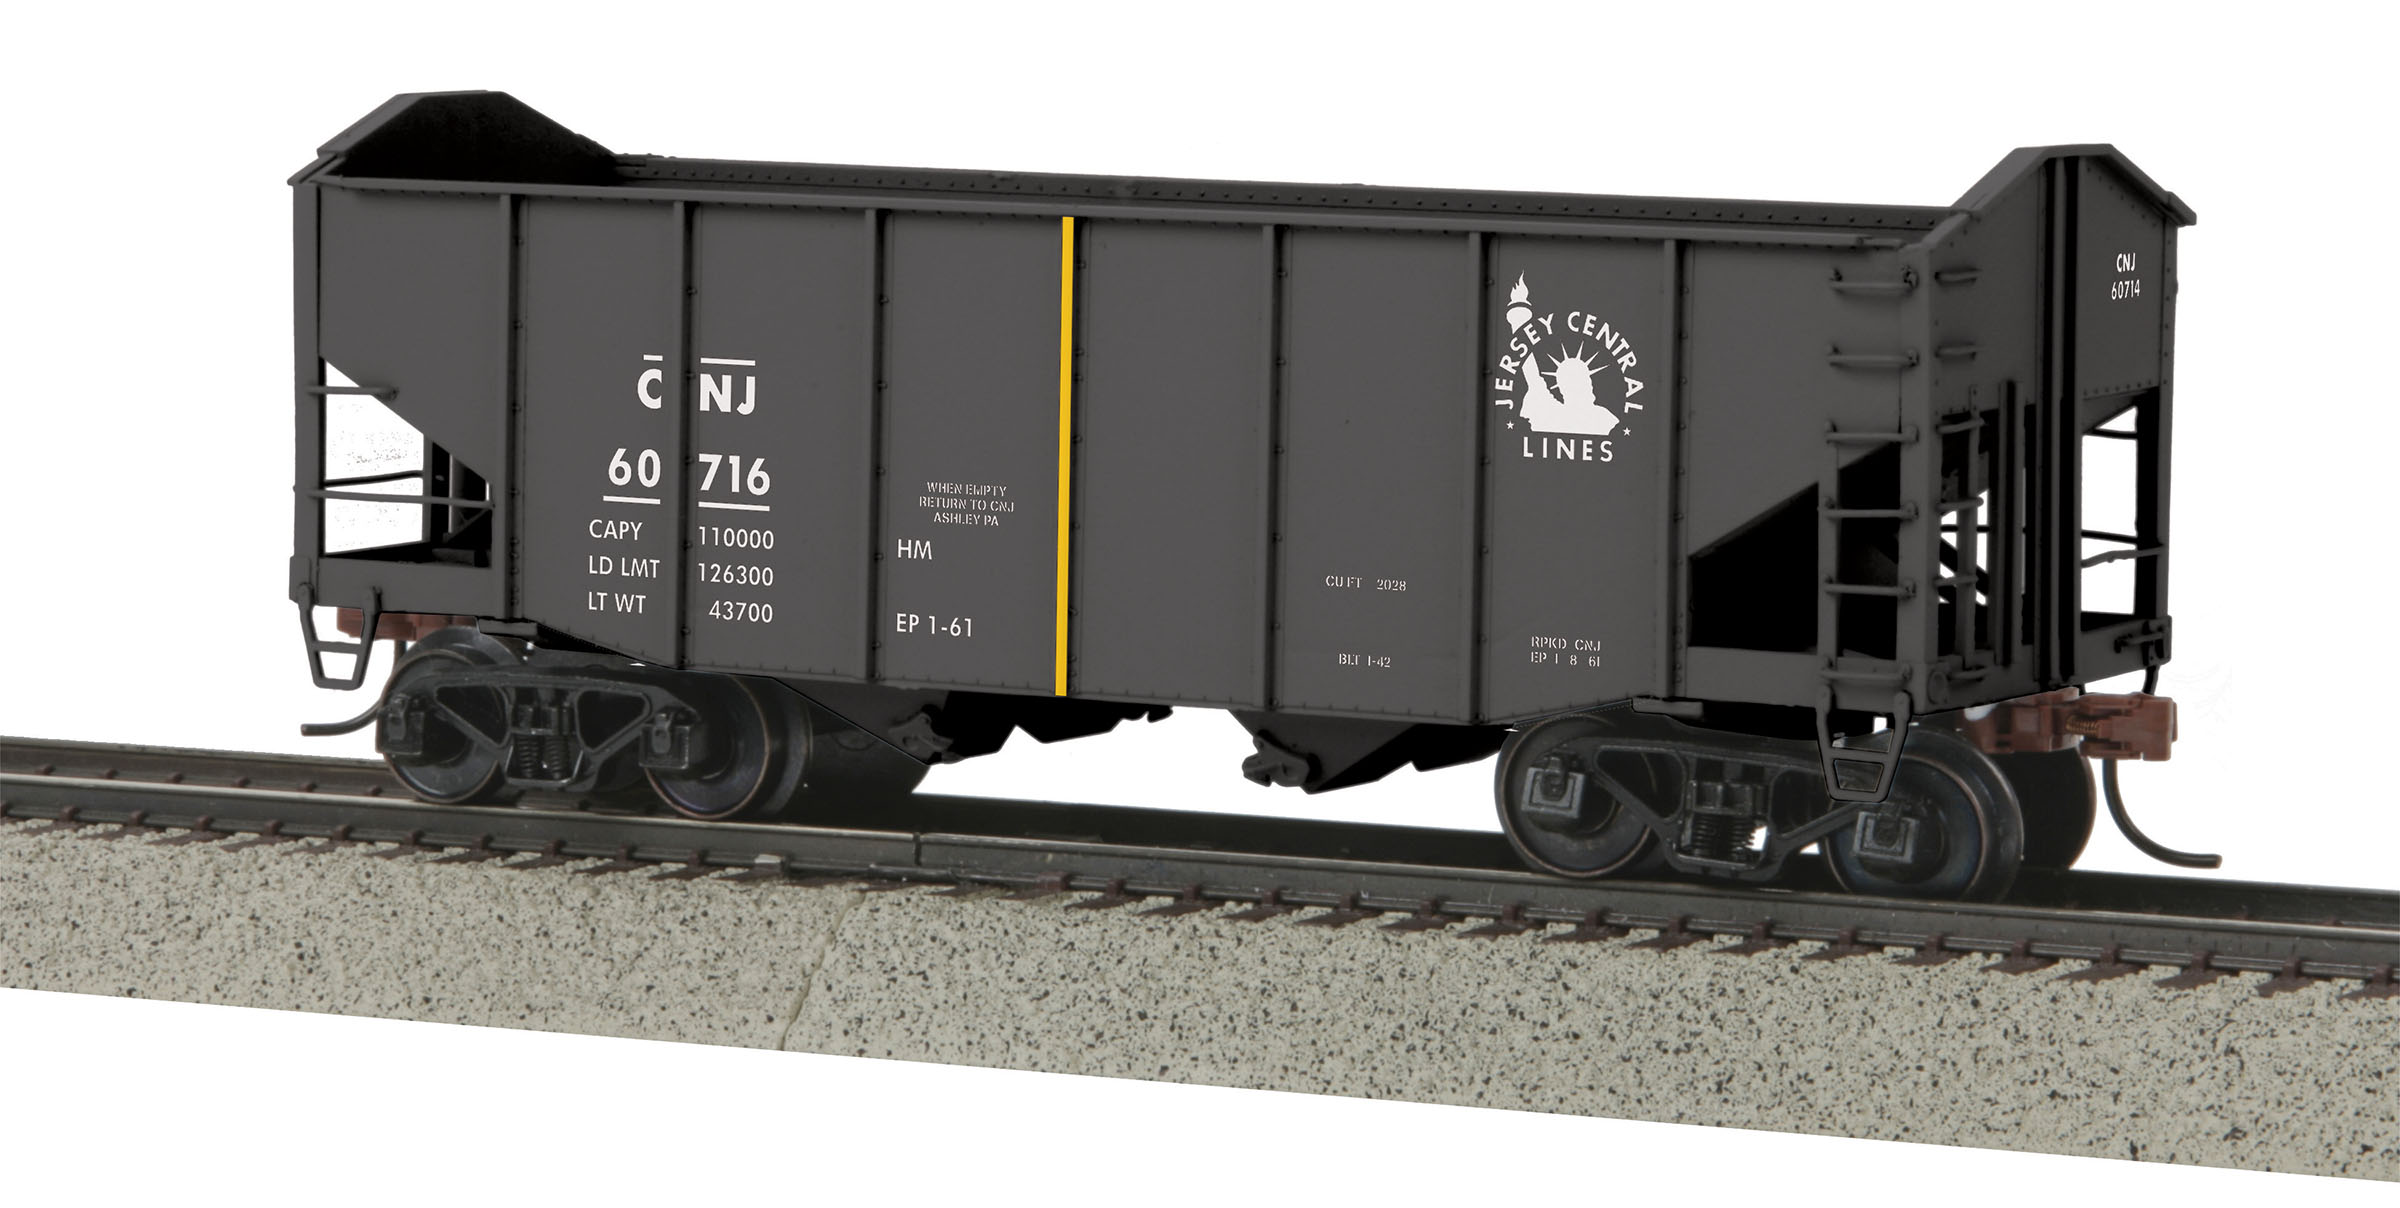 MTH 3575075 2-Bay Fish Belly Hopper Car Scale Wheel CNJ #60714